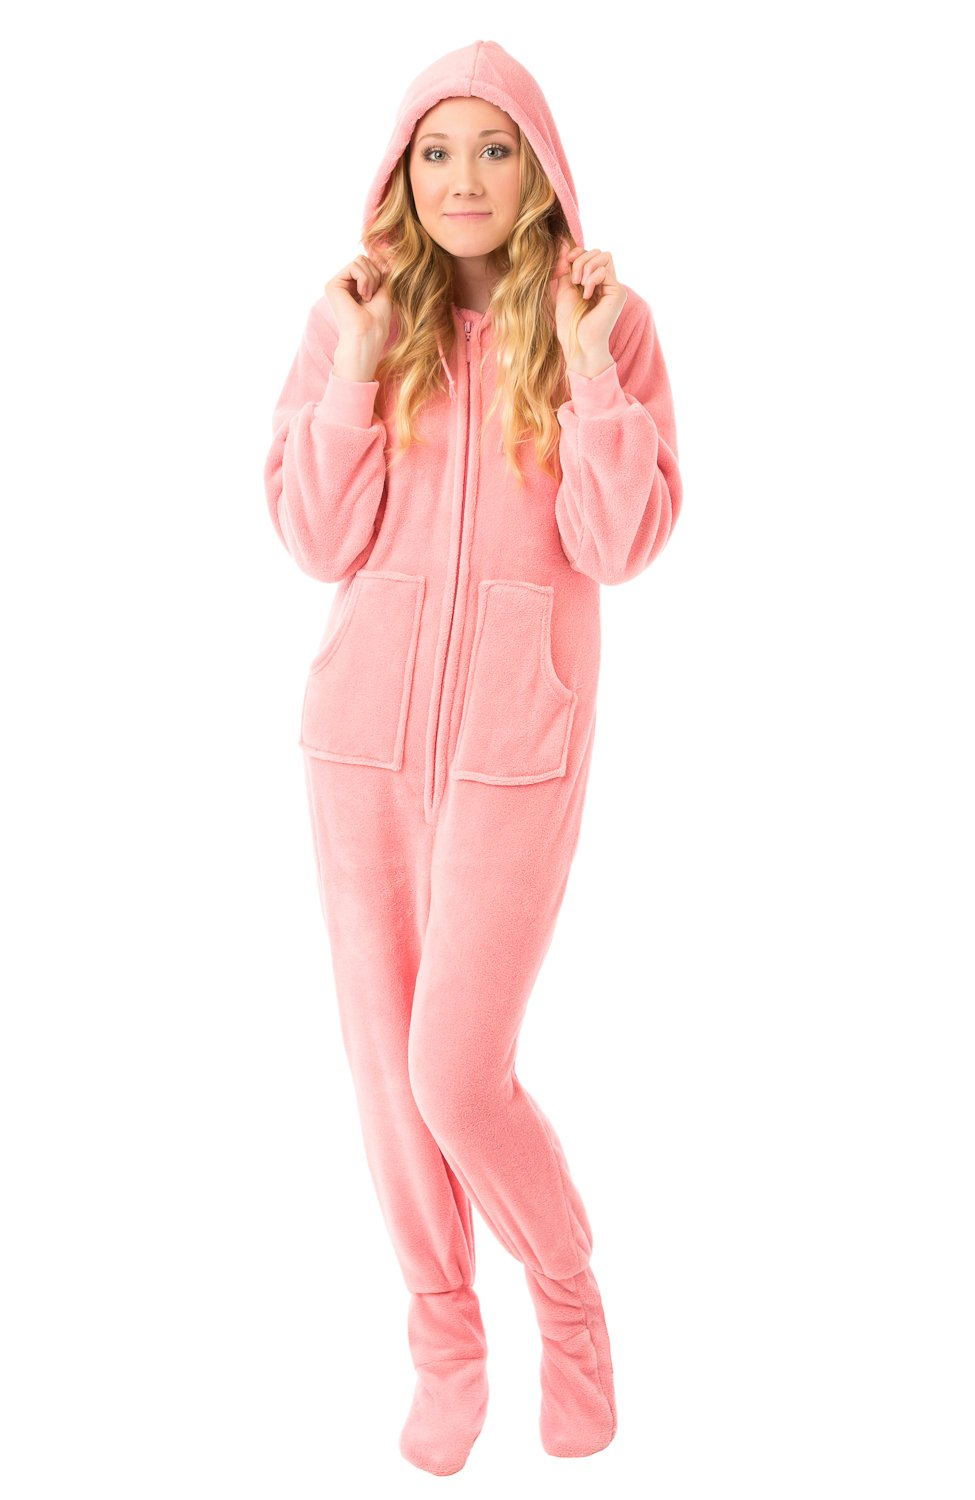 Big feet pjs pink hoodie plush footed pajamas w drop seat